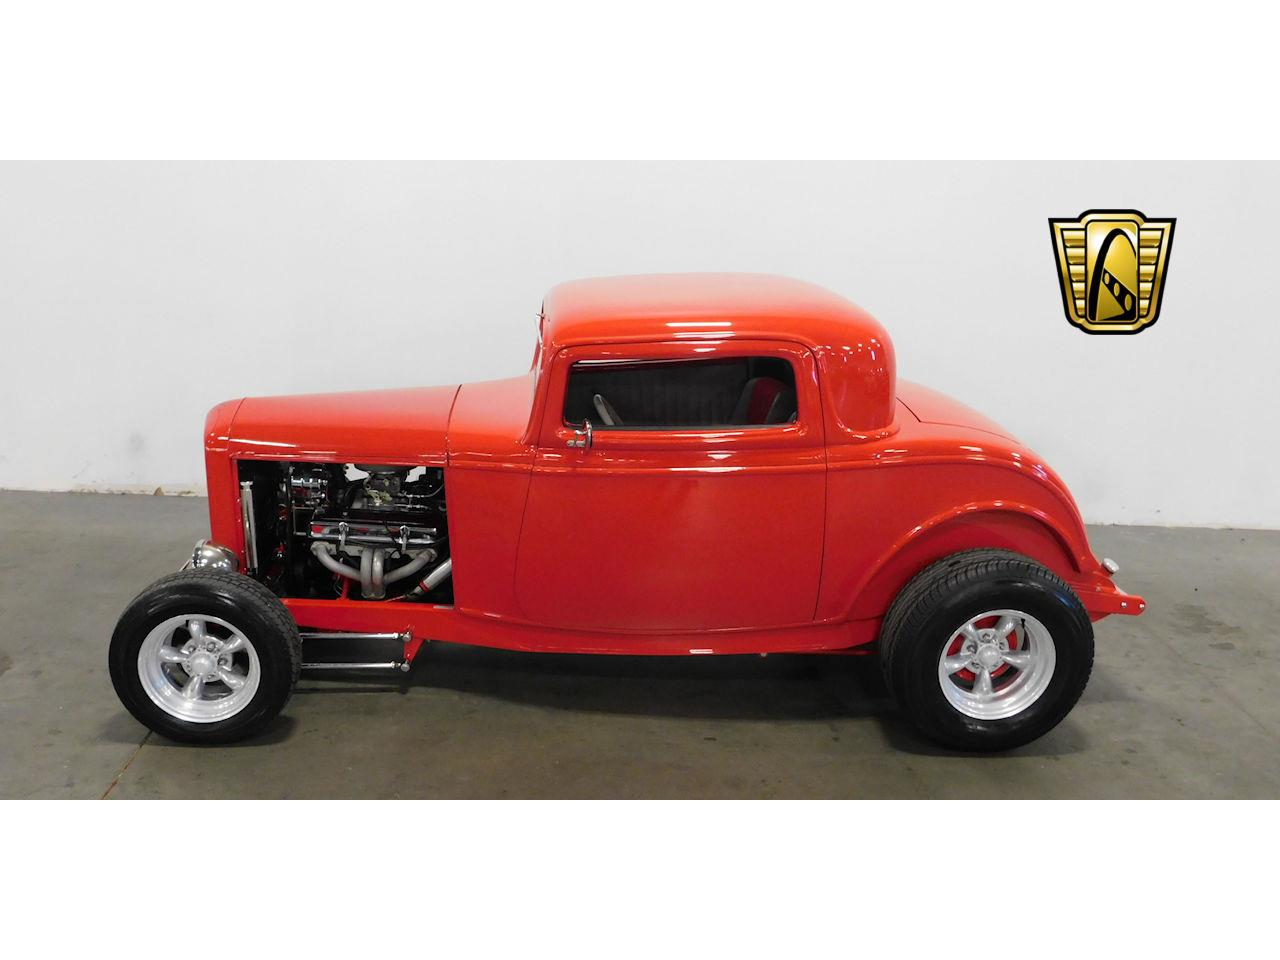 Large Picture of Classic 1932 Ford 3-Window Coupe located in Georgia - $42,995.00 - MZFA